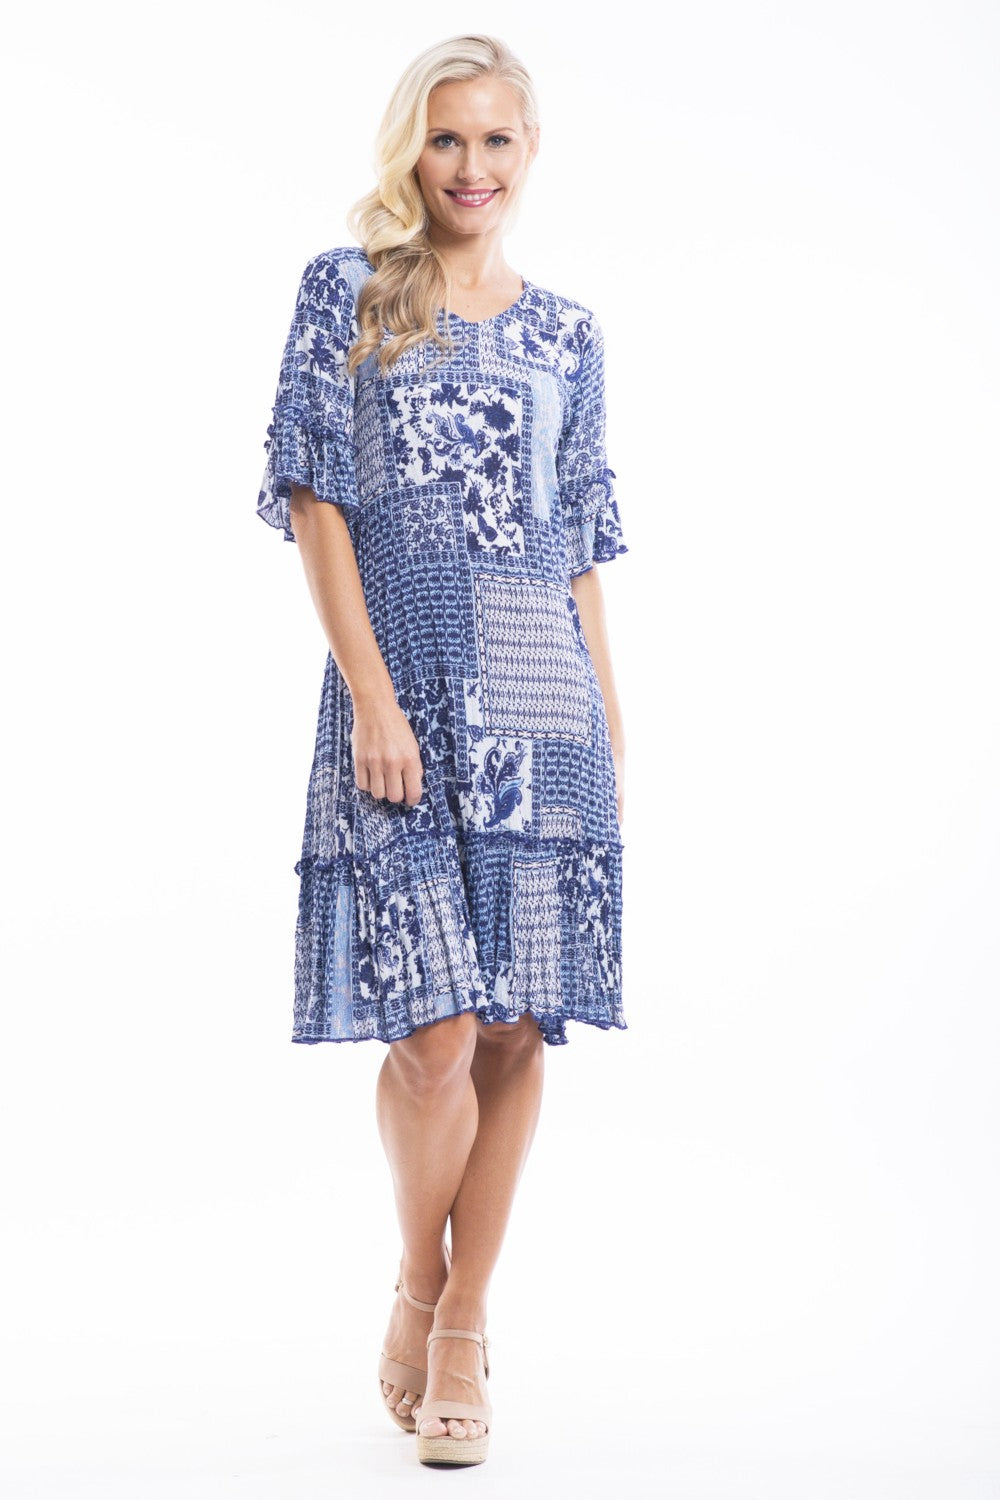 Betty Blue Patch Tunic - at I Love Tunics @ www.ilovetunics.com = Number One! Tunics Destination